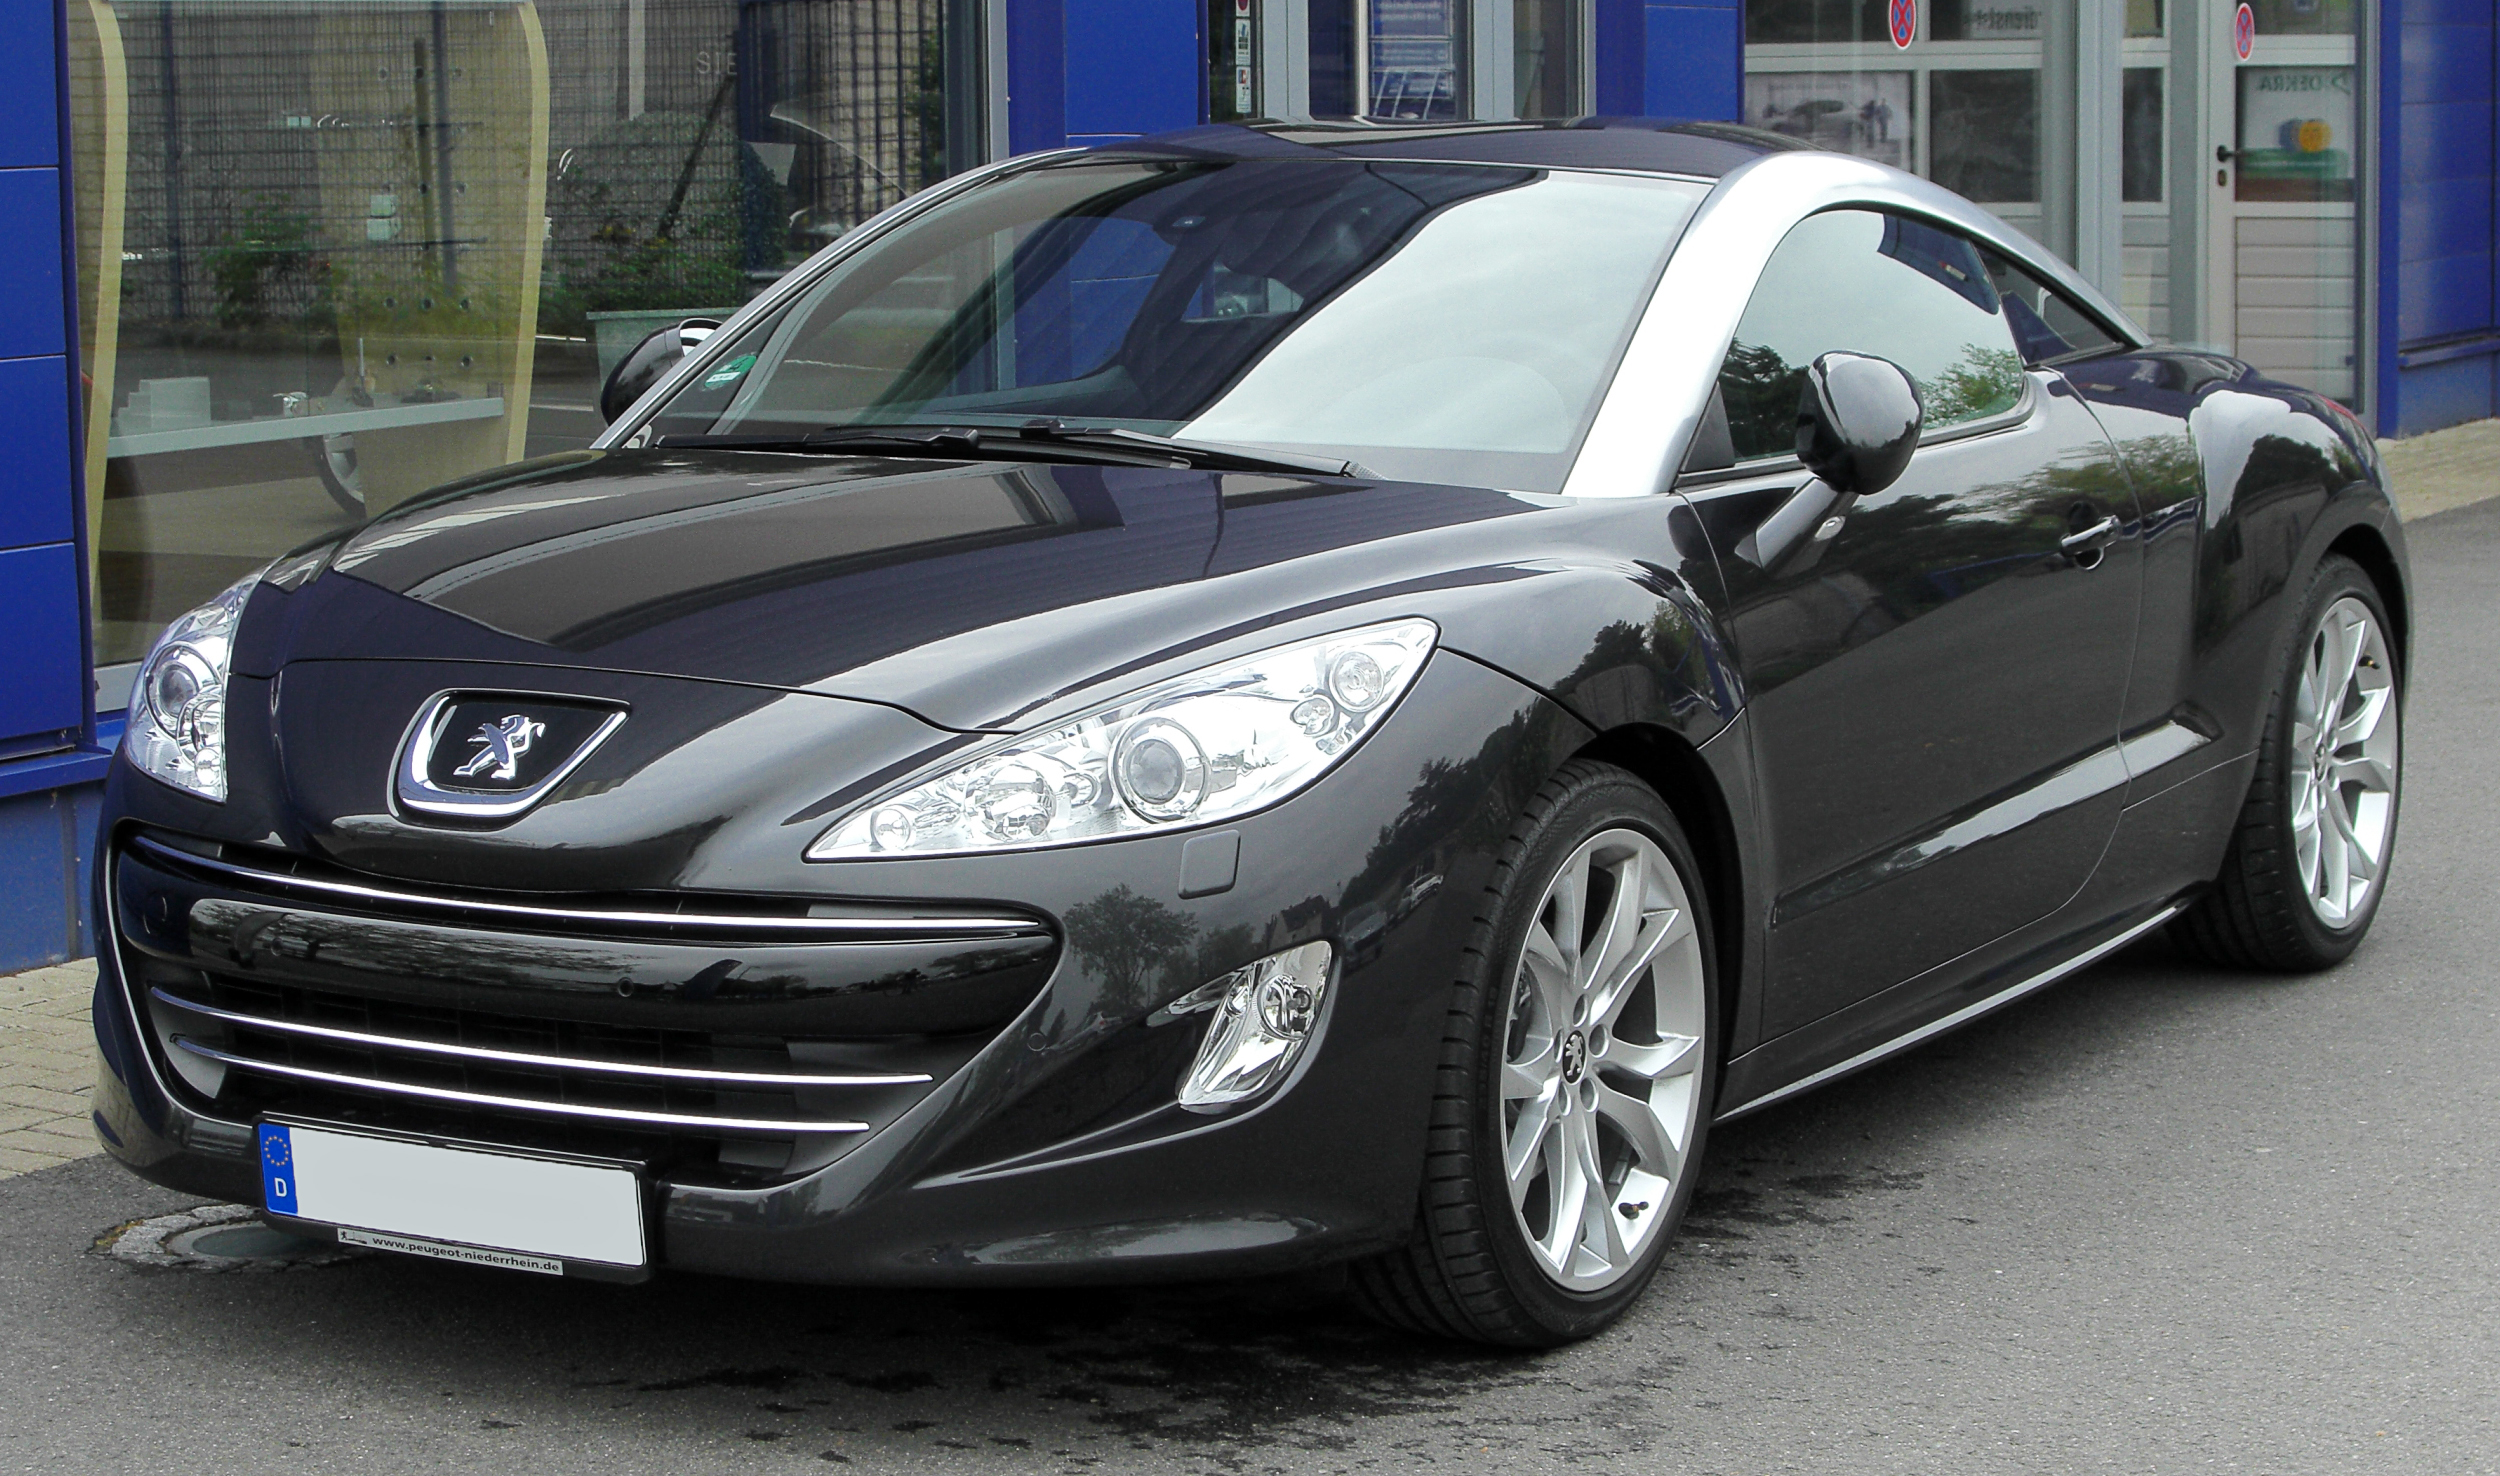 peugeot rcz forum headlight rcz vs 308 mk1 lights electrics. Black Bedroom Furniture Sets. Home Design Ideas